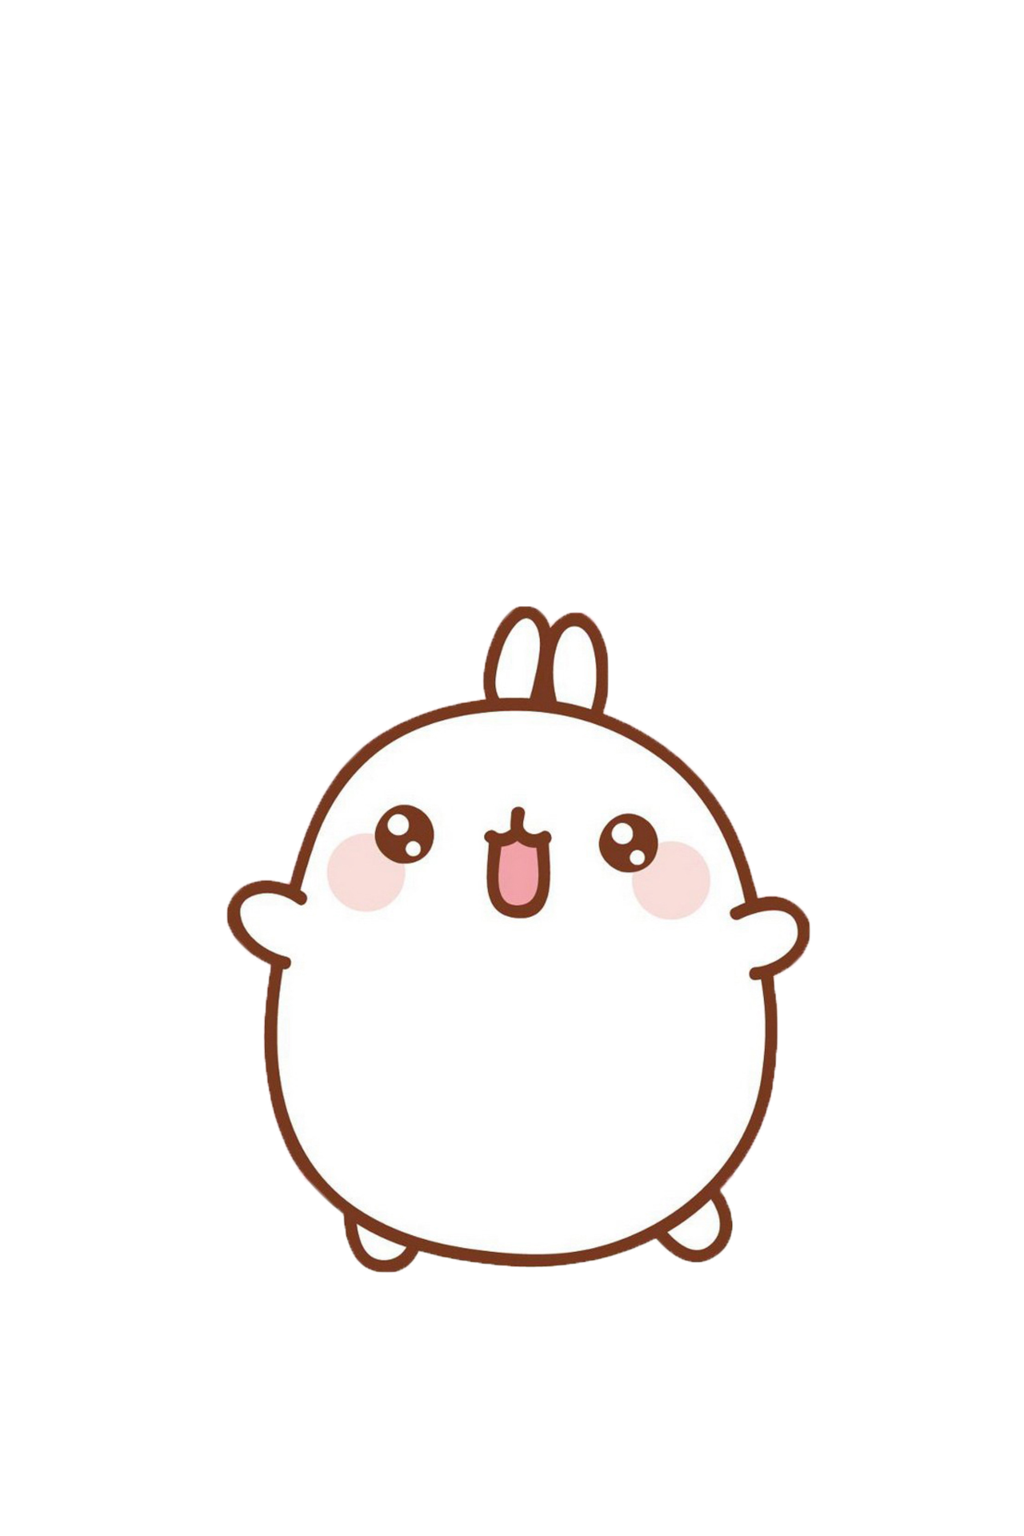 Index of /~jelgutie/Kawaii/kawaiiimages - Kawaii Transparent PNG